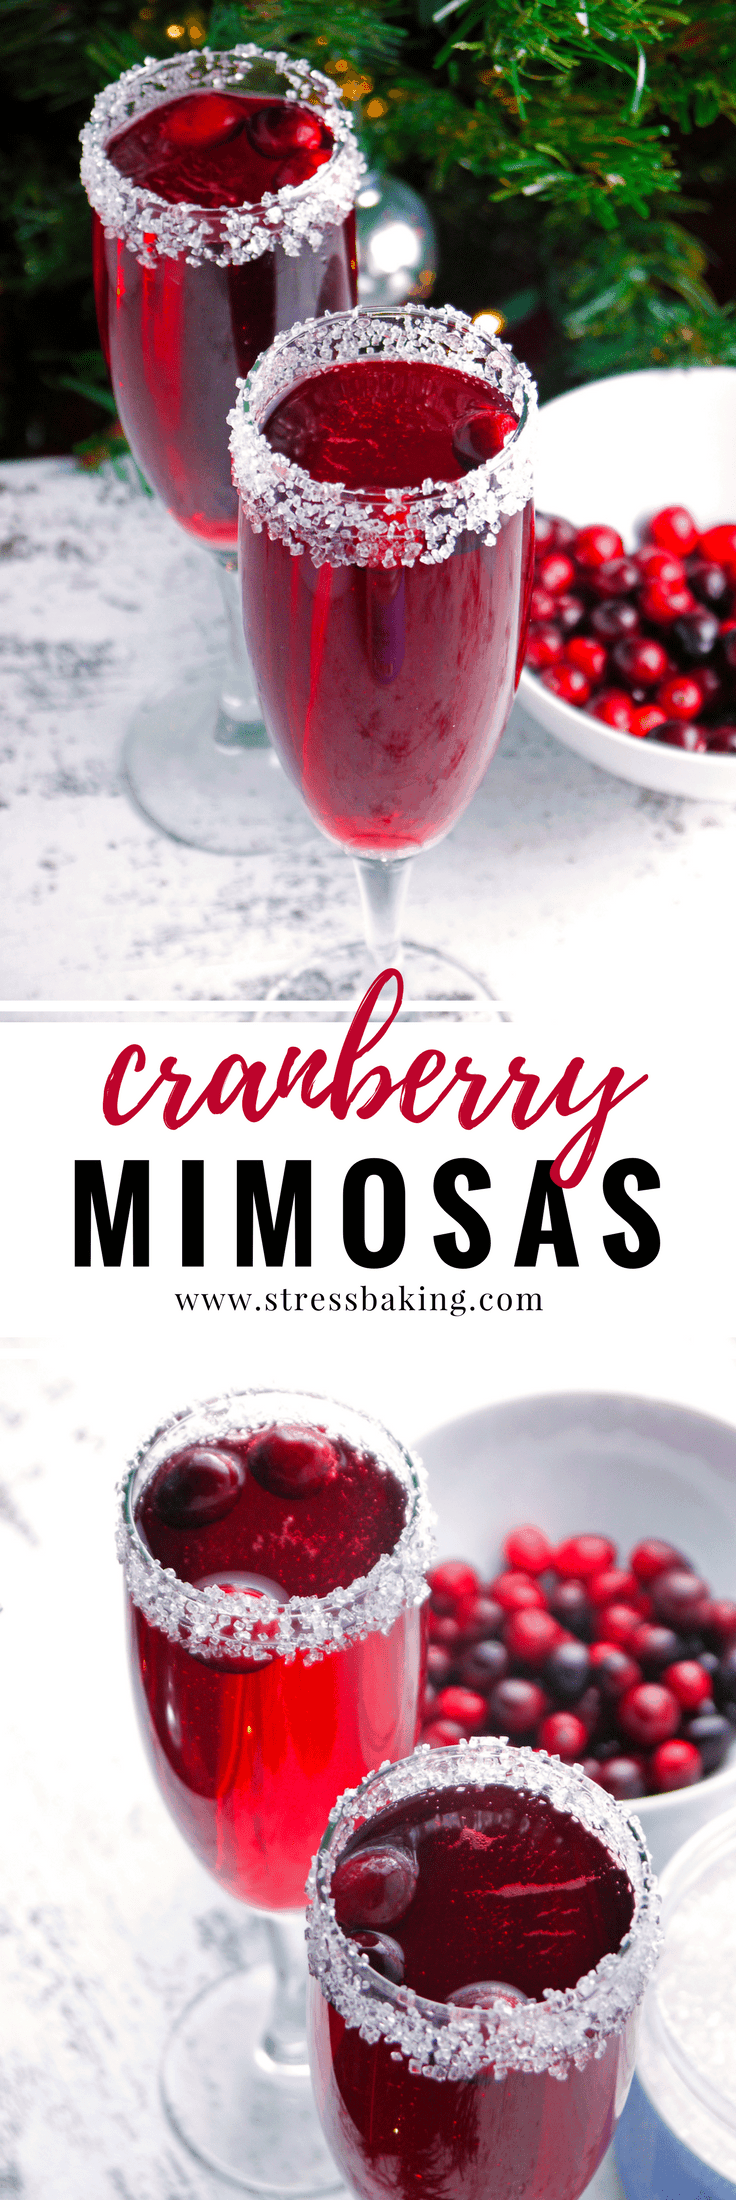 Cranberry Mimosas: A cranberry lover's version of the standard mimosa. Tart cranberries pair perfectly with a sugar-rimmed glass and sparkling champagne bubbles! The perfect holiday cocktail or Christmas cocktail. | stressbaking.com #stressbaking #holidays #christmas #thanksgiving #newyears #cranberries #drinks #cocktail